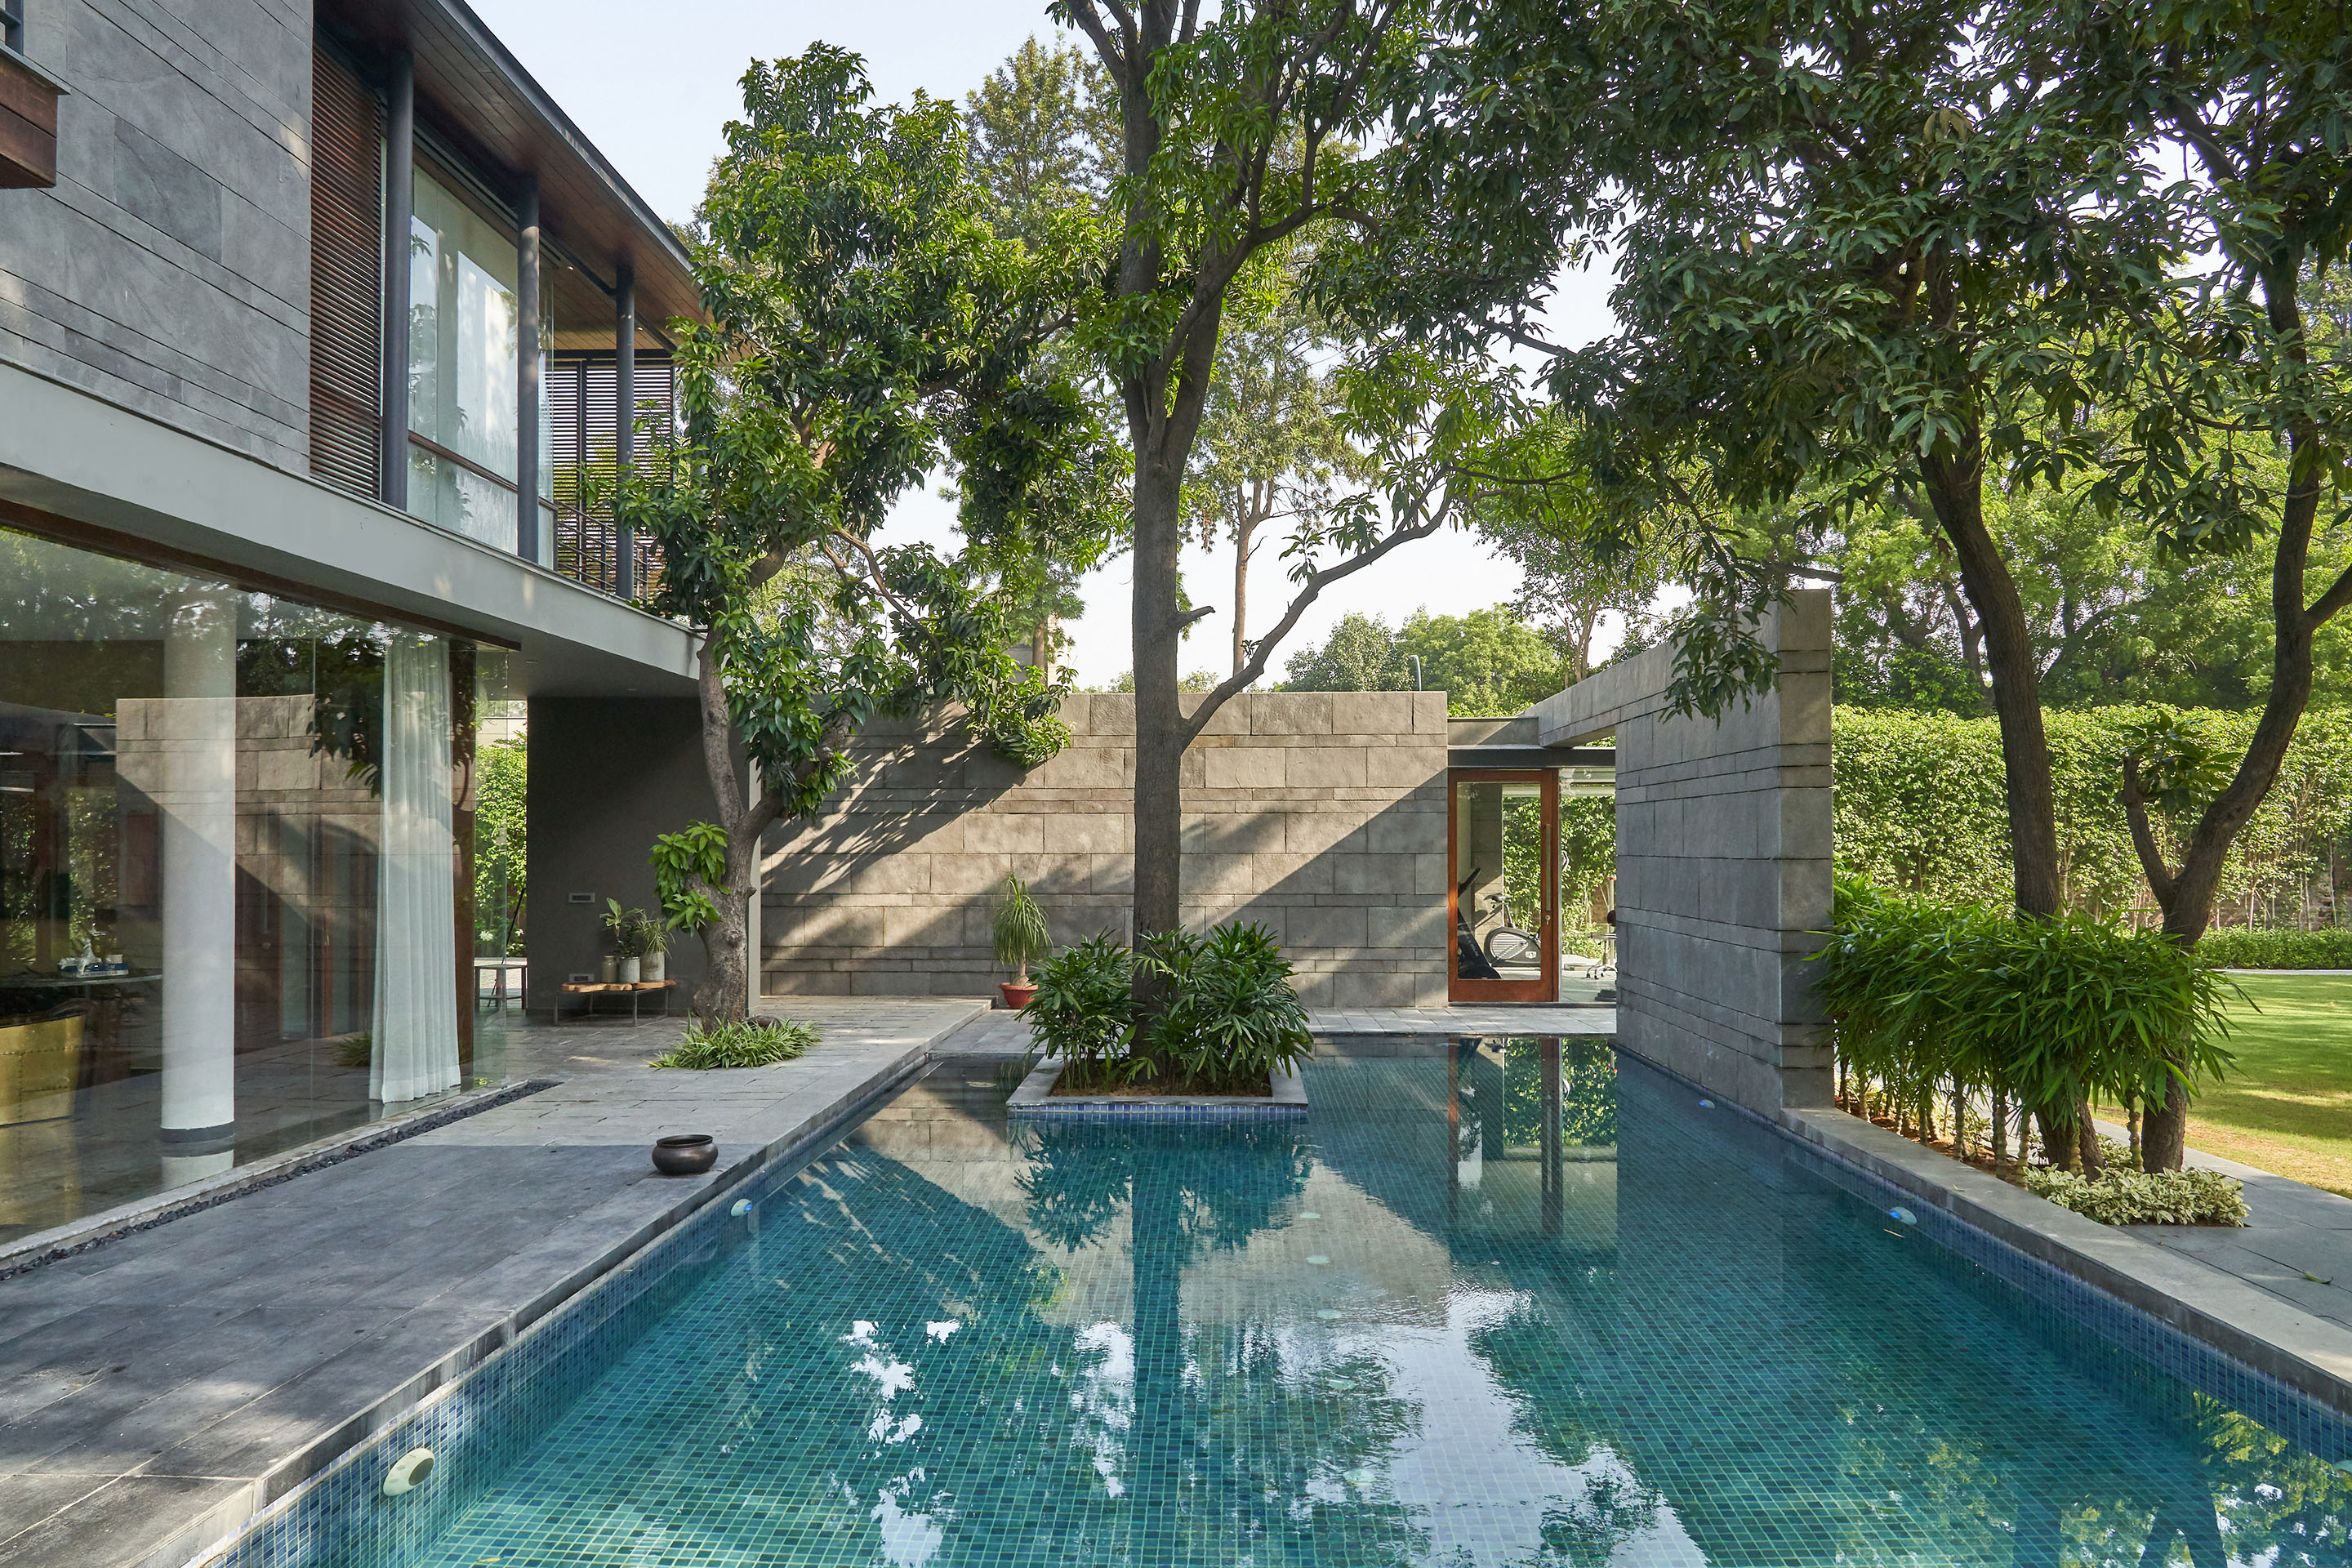 Farmhouse Near Bangalore Delhi This Chhatarpur Farmhouse Nestles Snugly Among Mango Trees